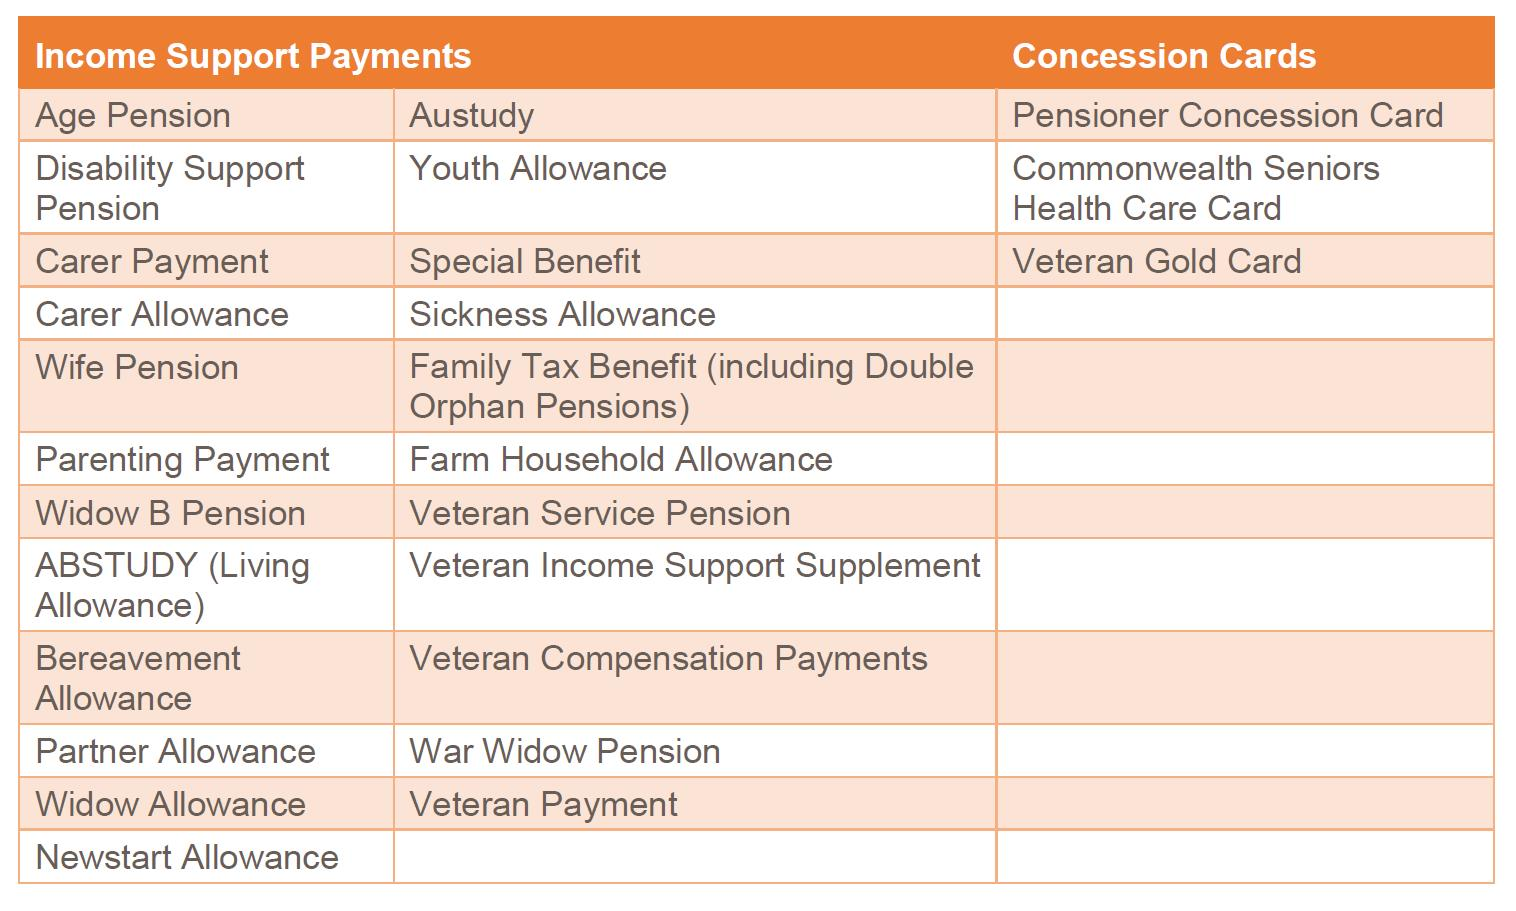 Income Support Payments